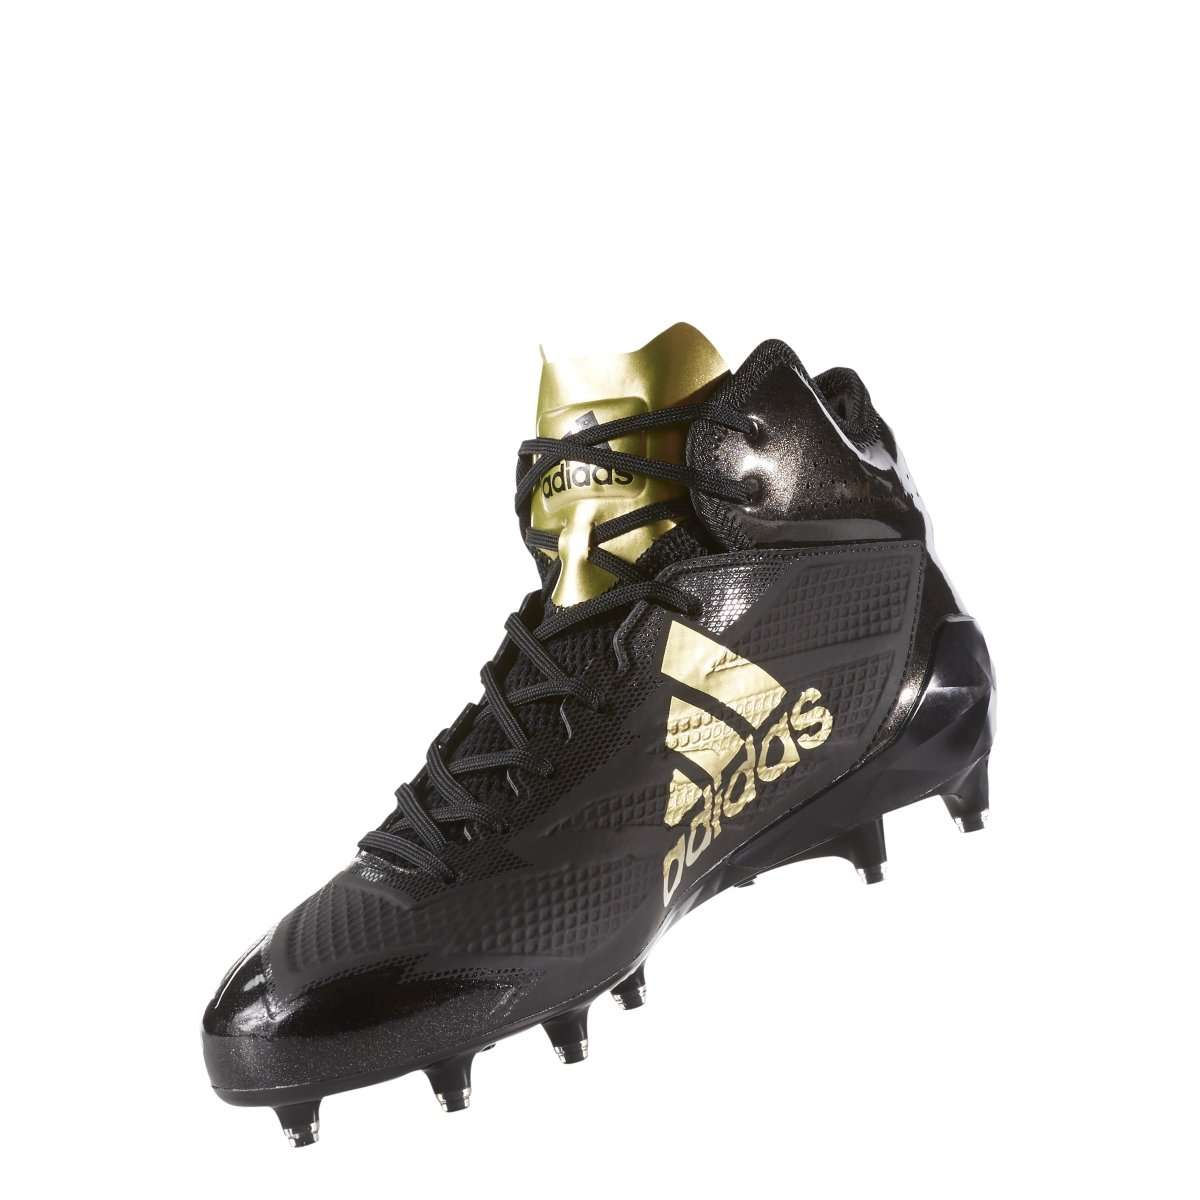 87ad65aa39f ... adidas adizero 5-Star 6.0 Mid Football Cleats - League Outfitters ...